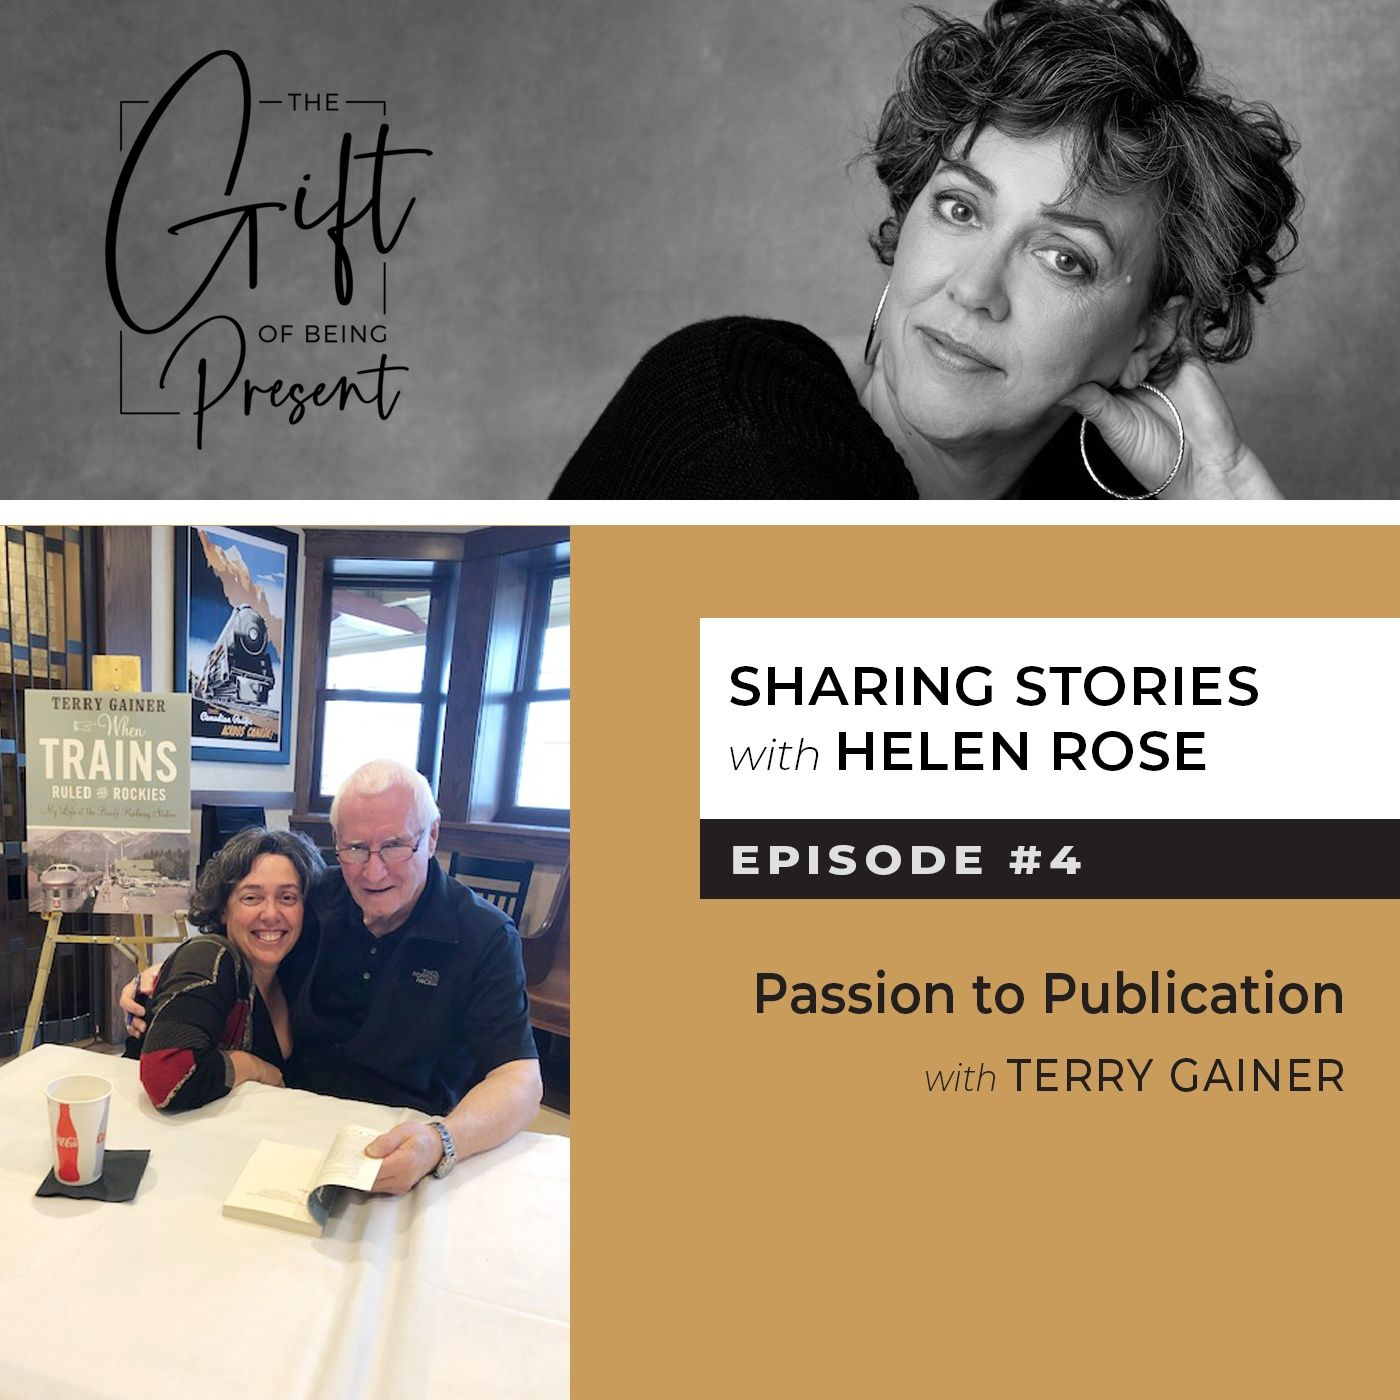 Passion to Publication with Terry Gainer